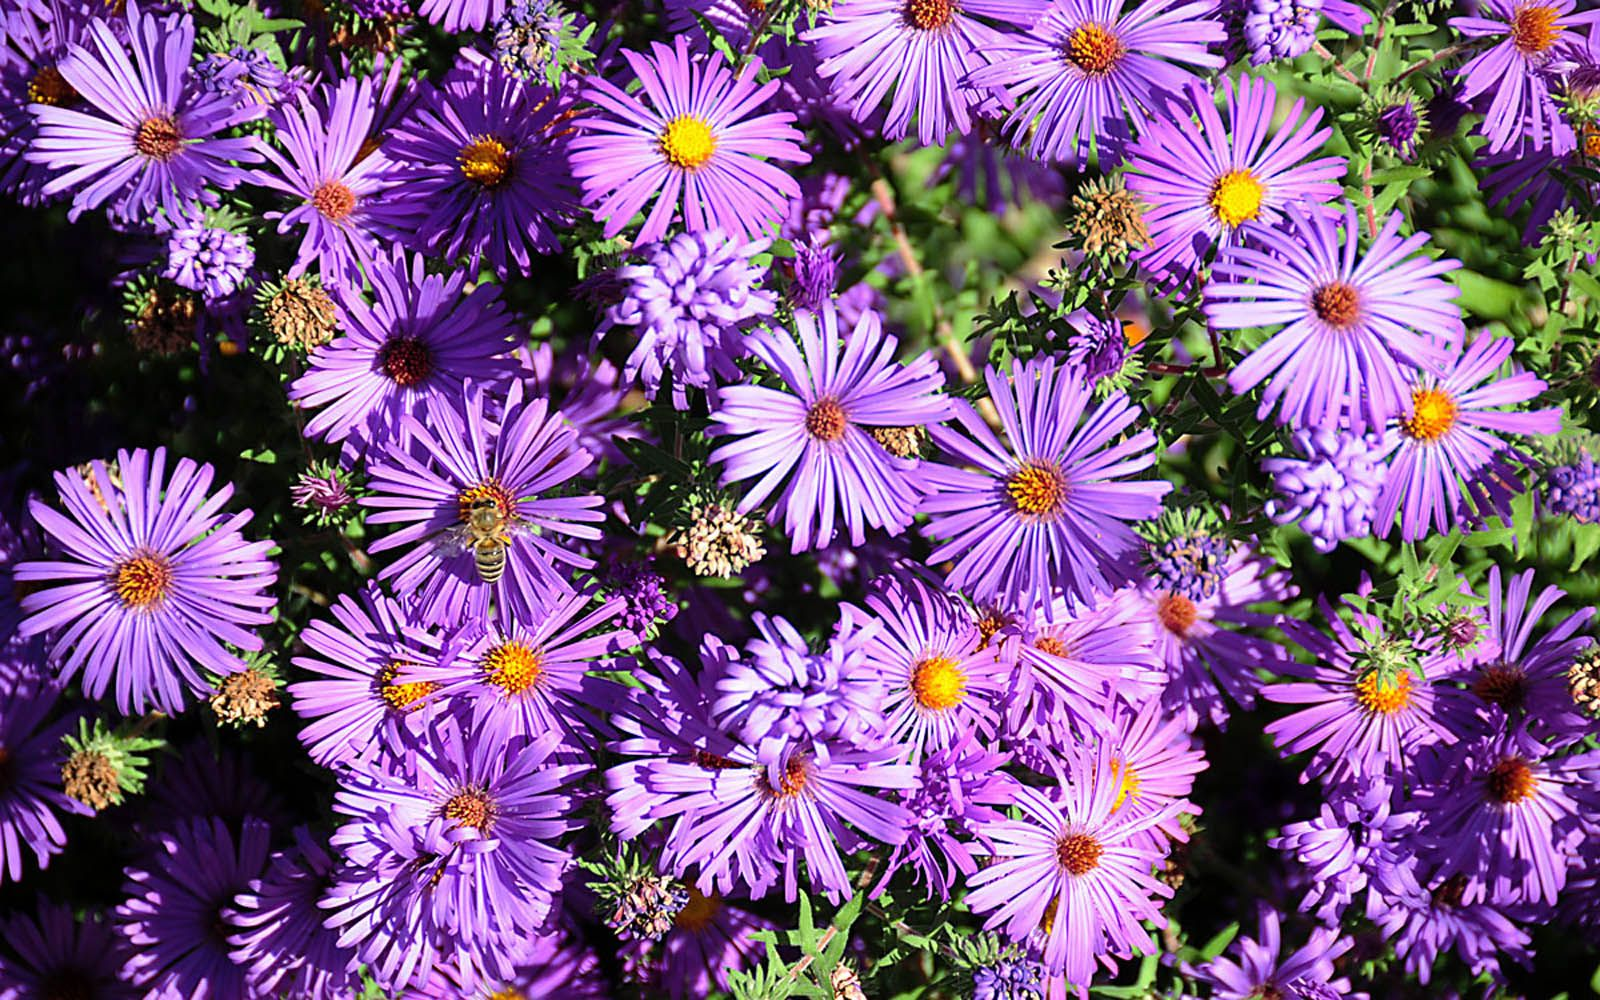 Xs Wallpapers Hd Aster Flowers Wallpapers Aster Flower Flower Wallpaper Flowers